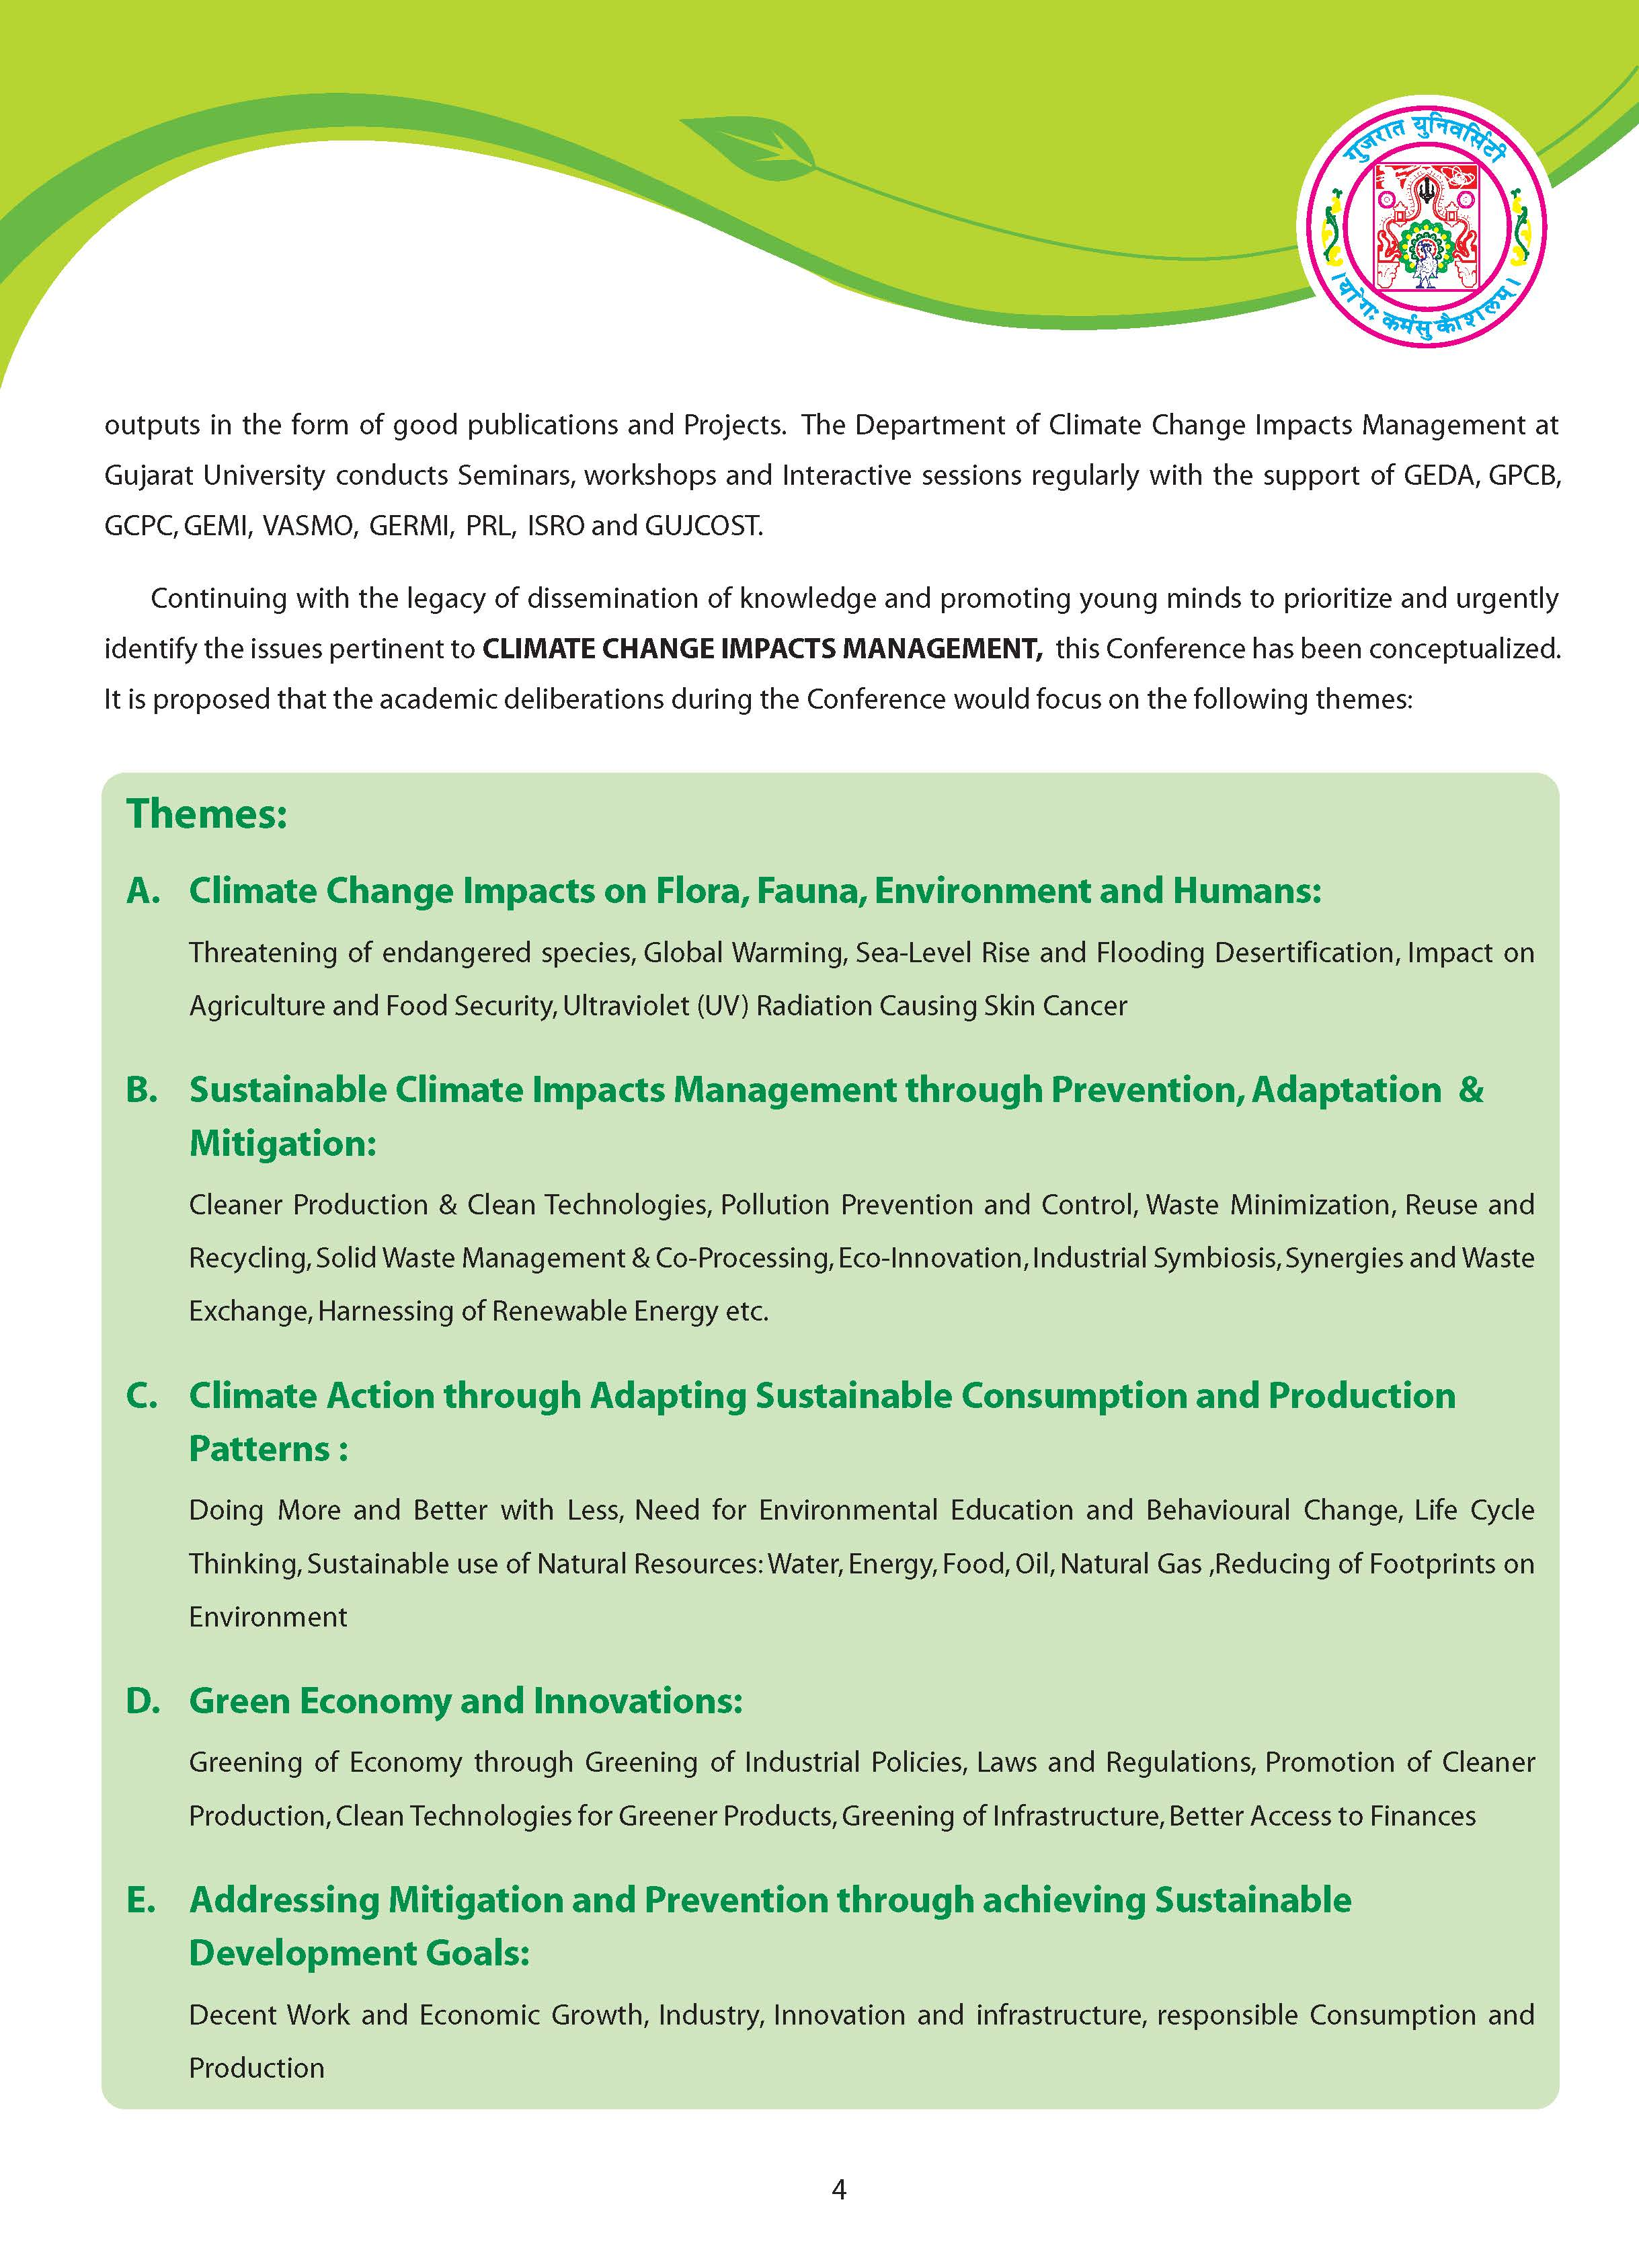 Upcoming Event: Envis Centre, Ministry of Environment & Forest, Govt